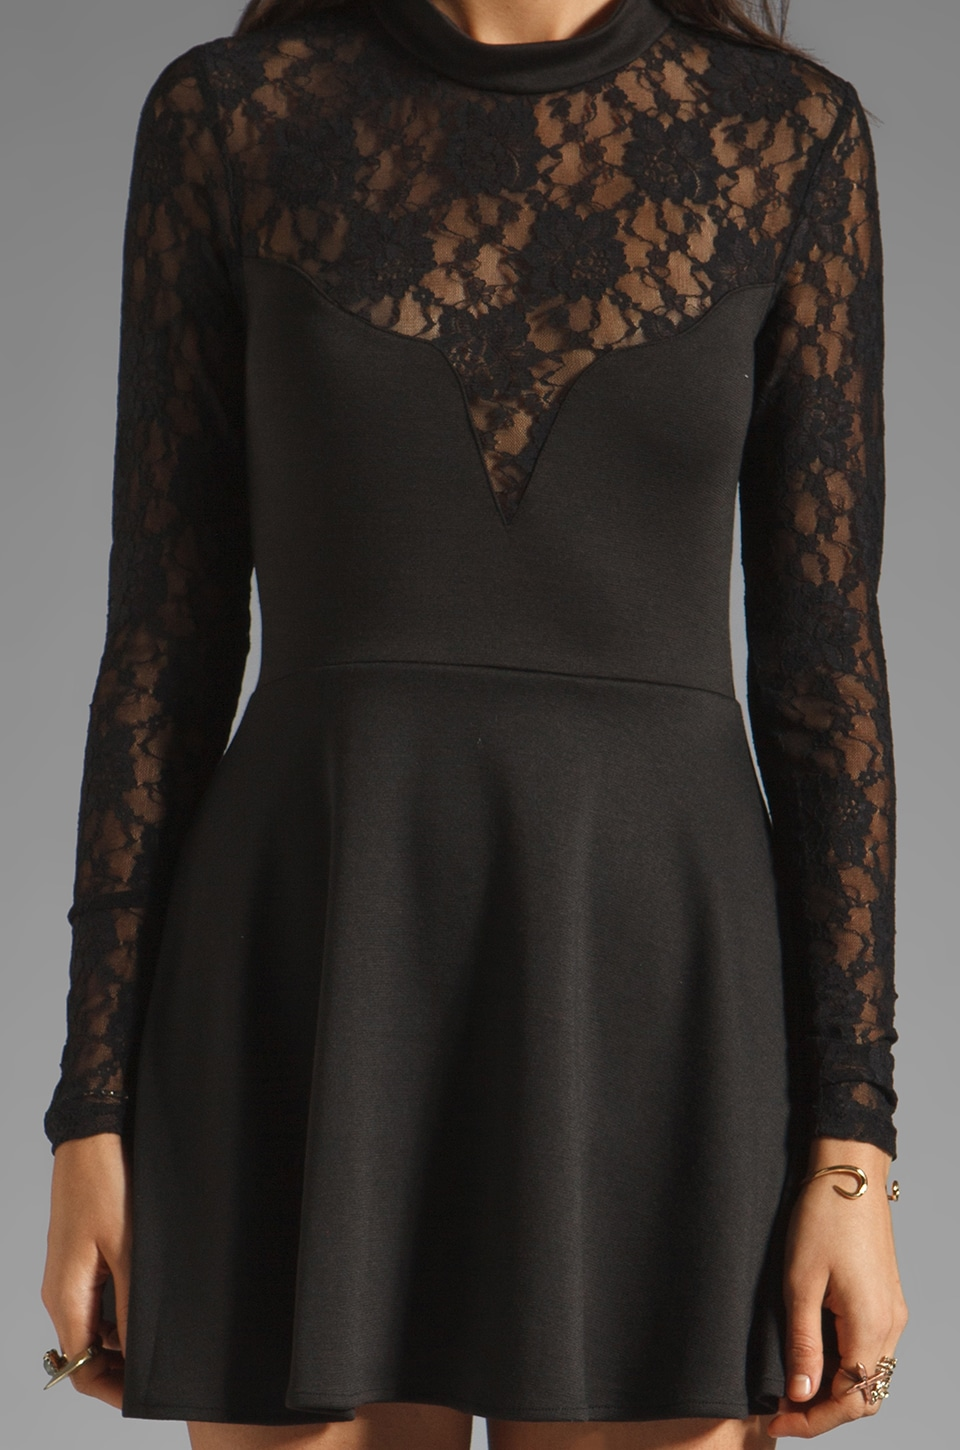 For Love & Lemons Tarot Dress in Black